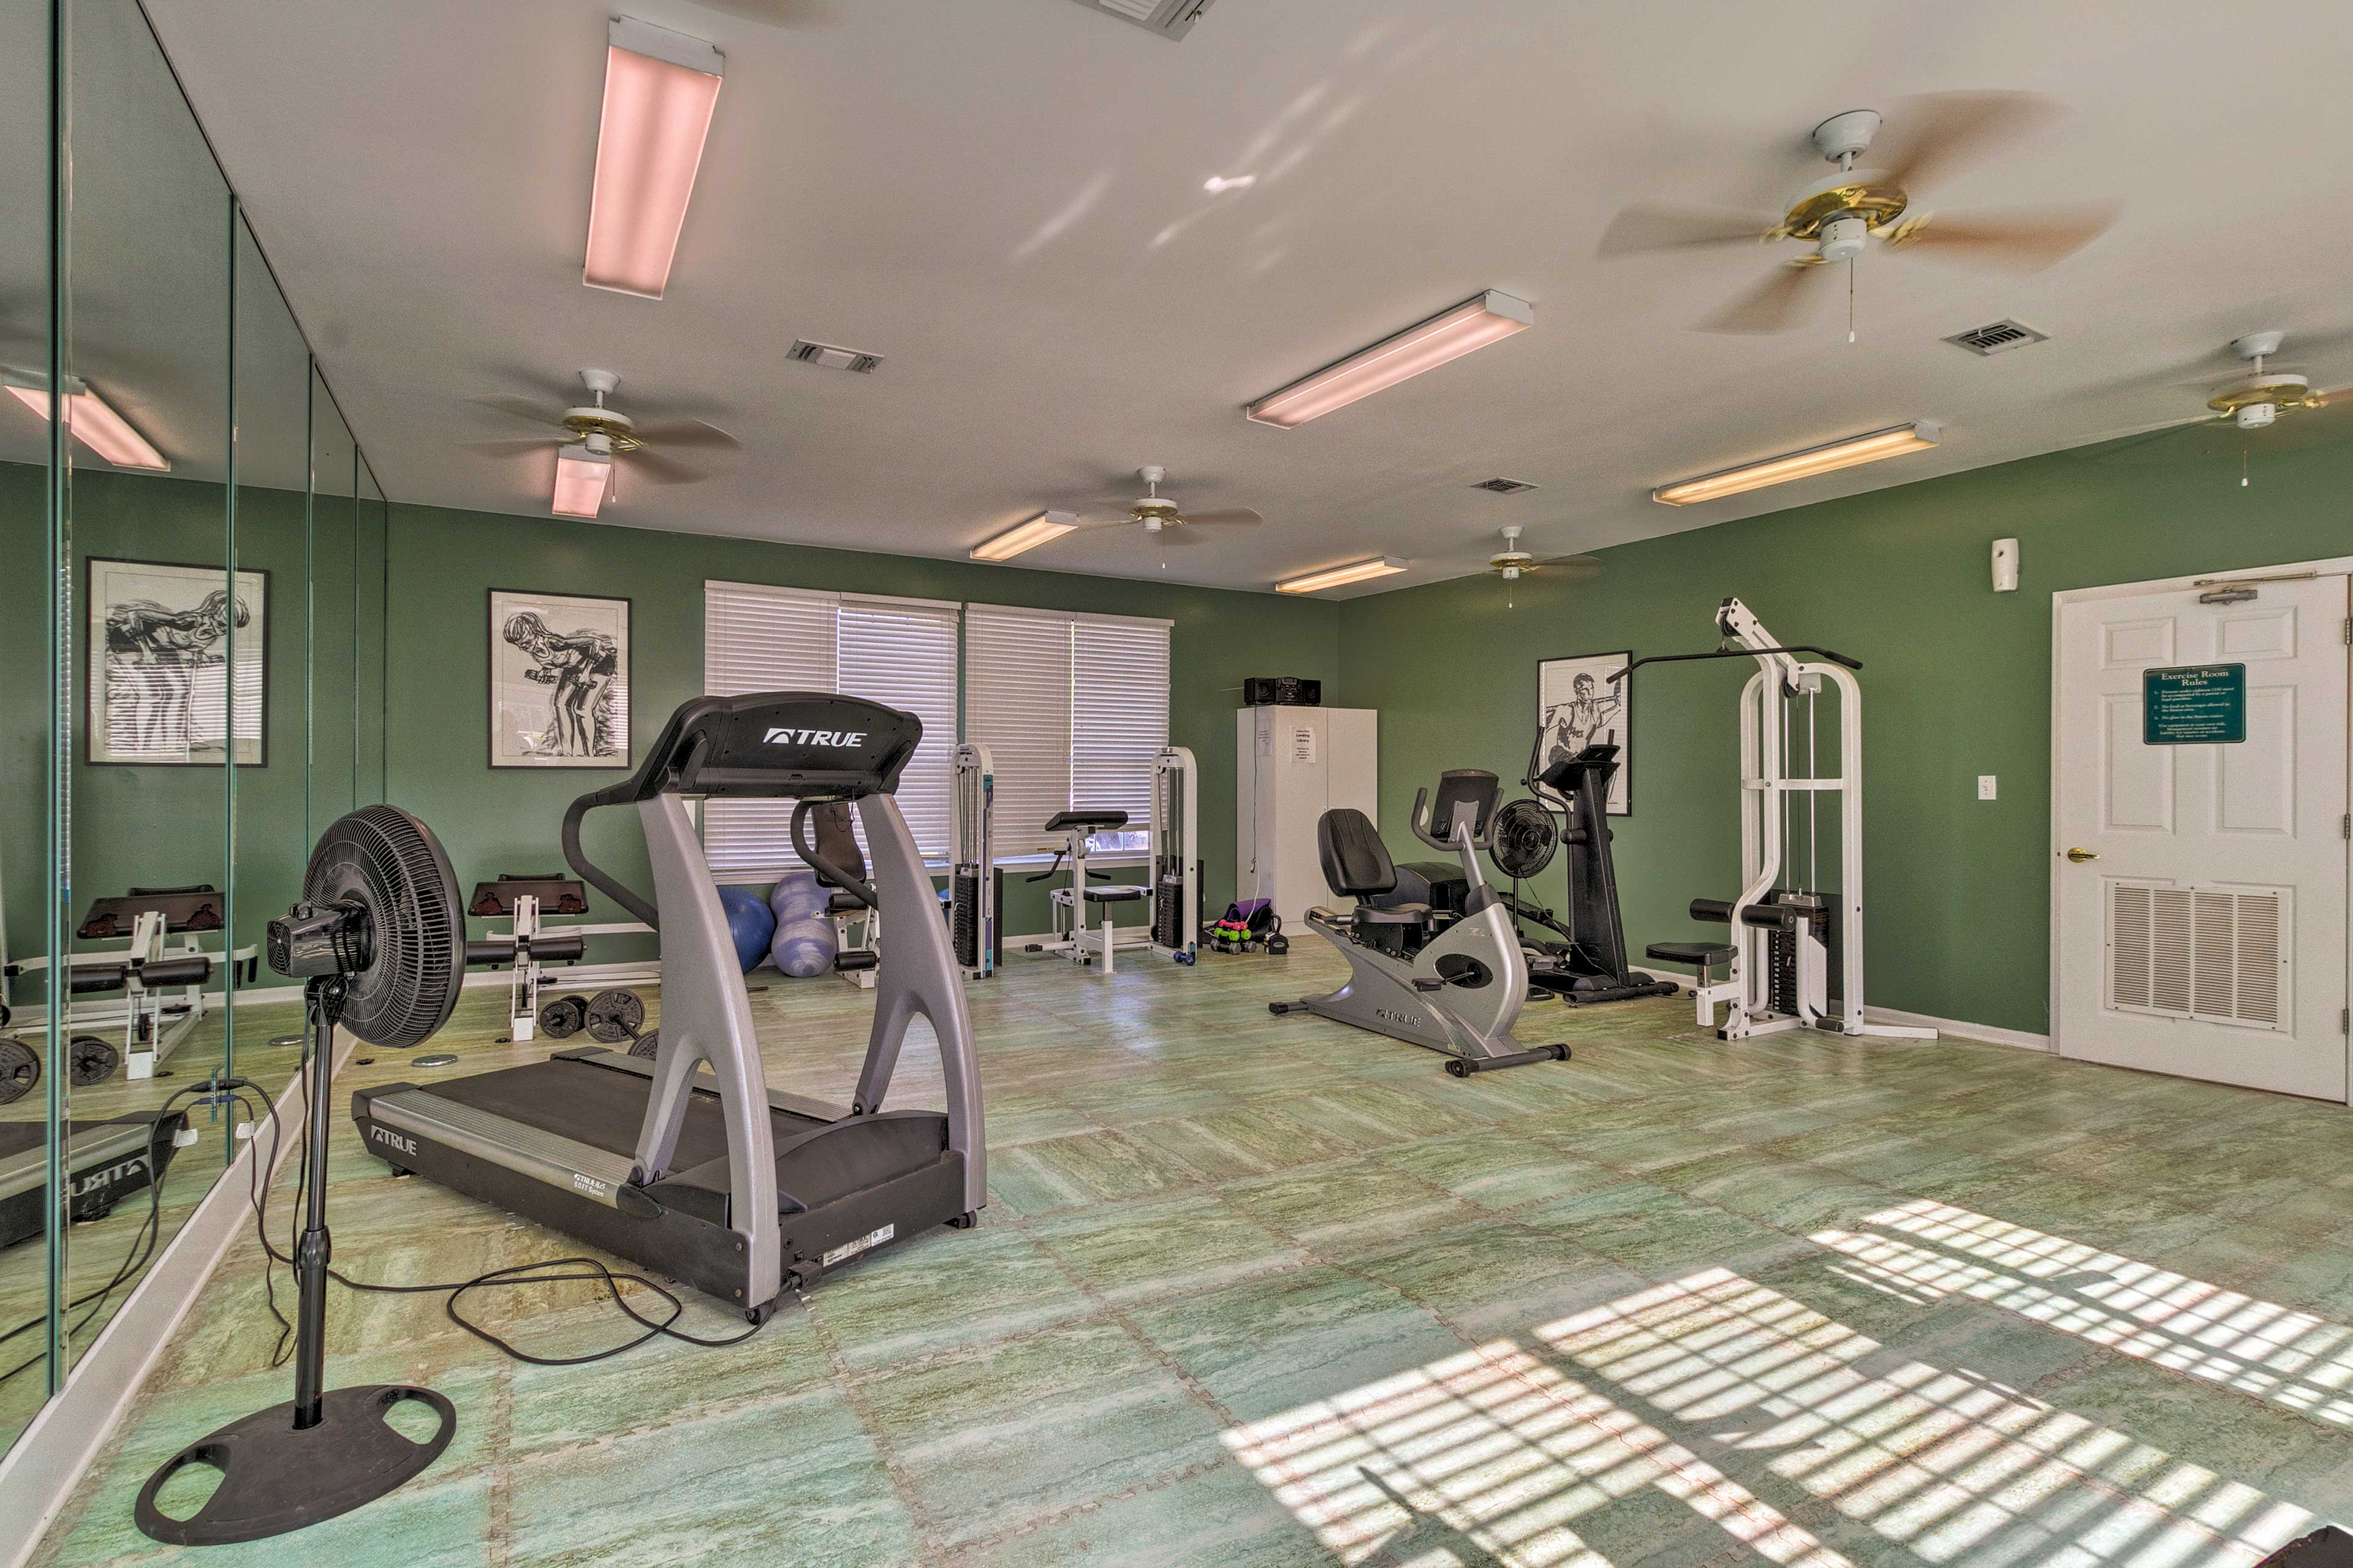 Start your day on a healthy note in the fitness center.